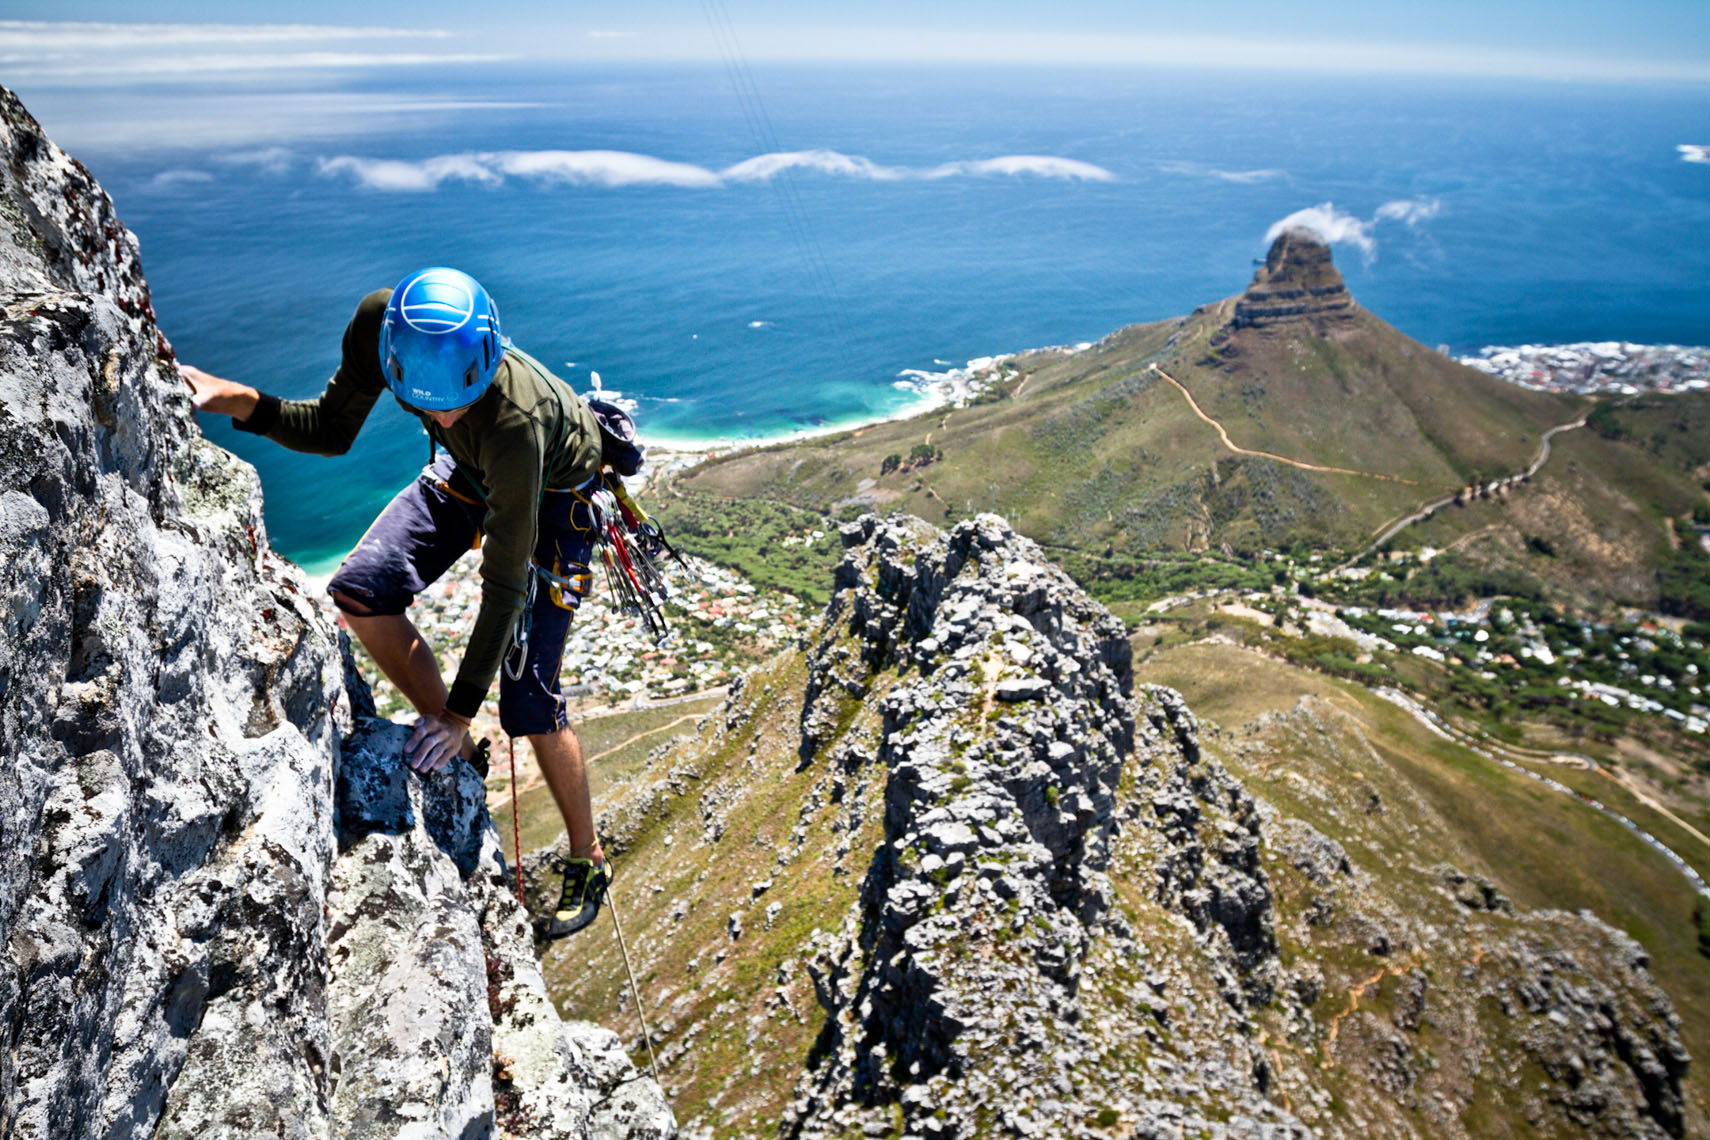 Richard rock climbing above Cape Town South Africa